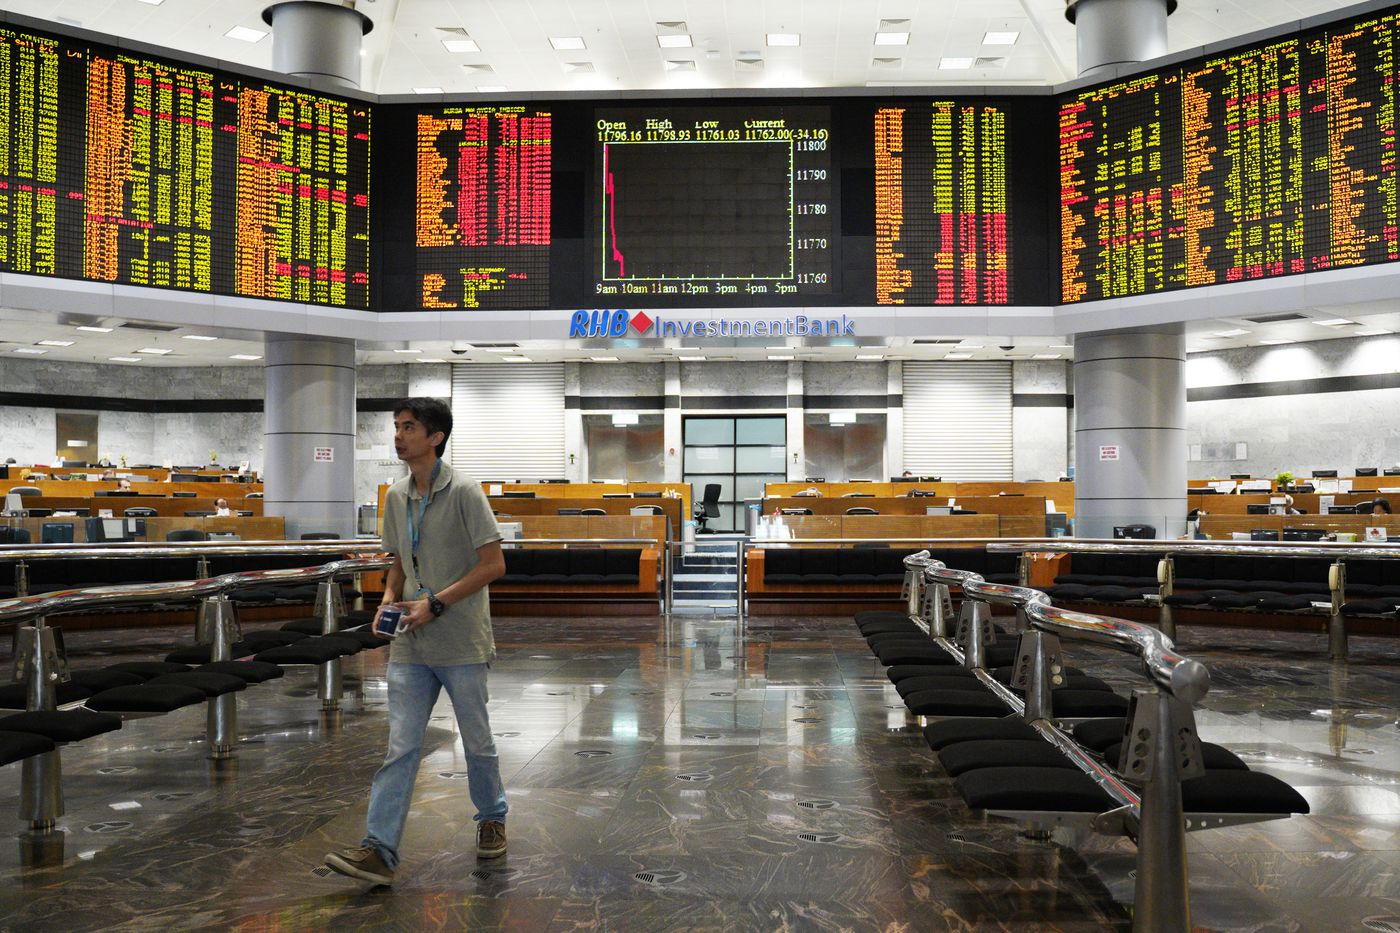 An Investor walks in front of private stock trading boards at a private stock  market gallery